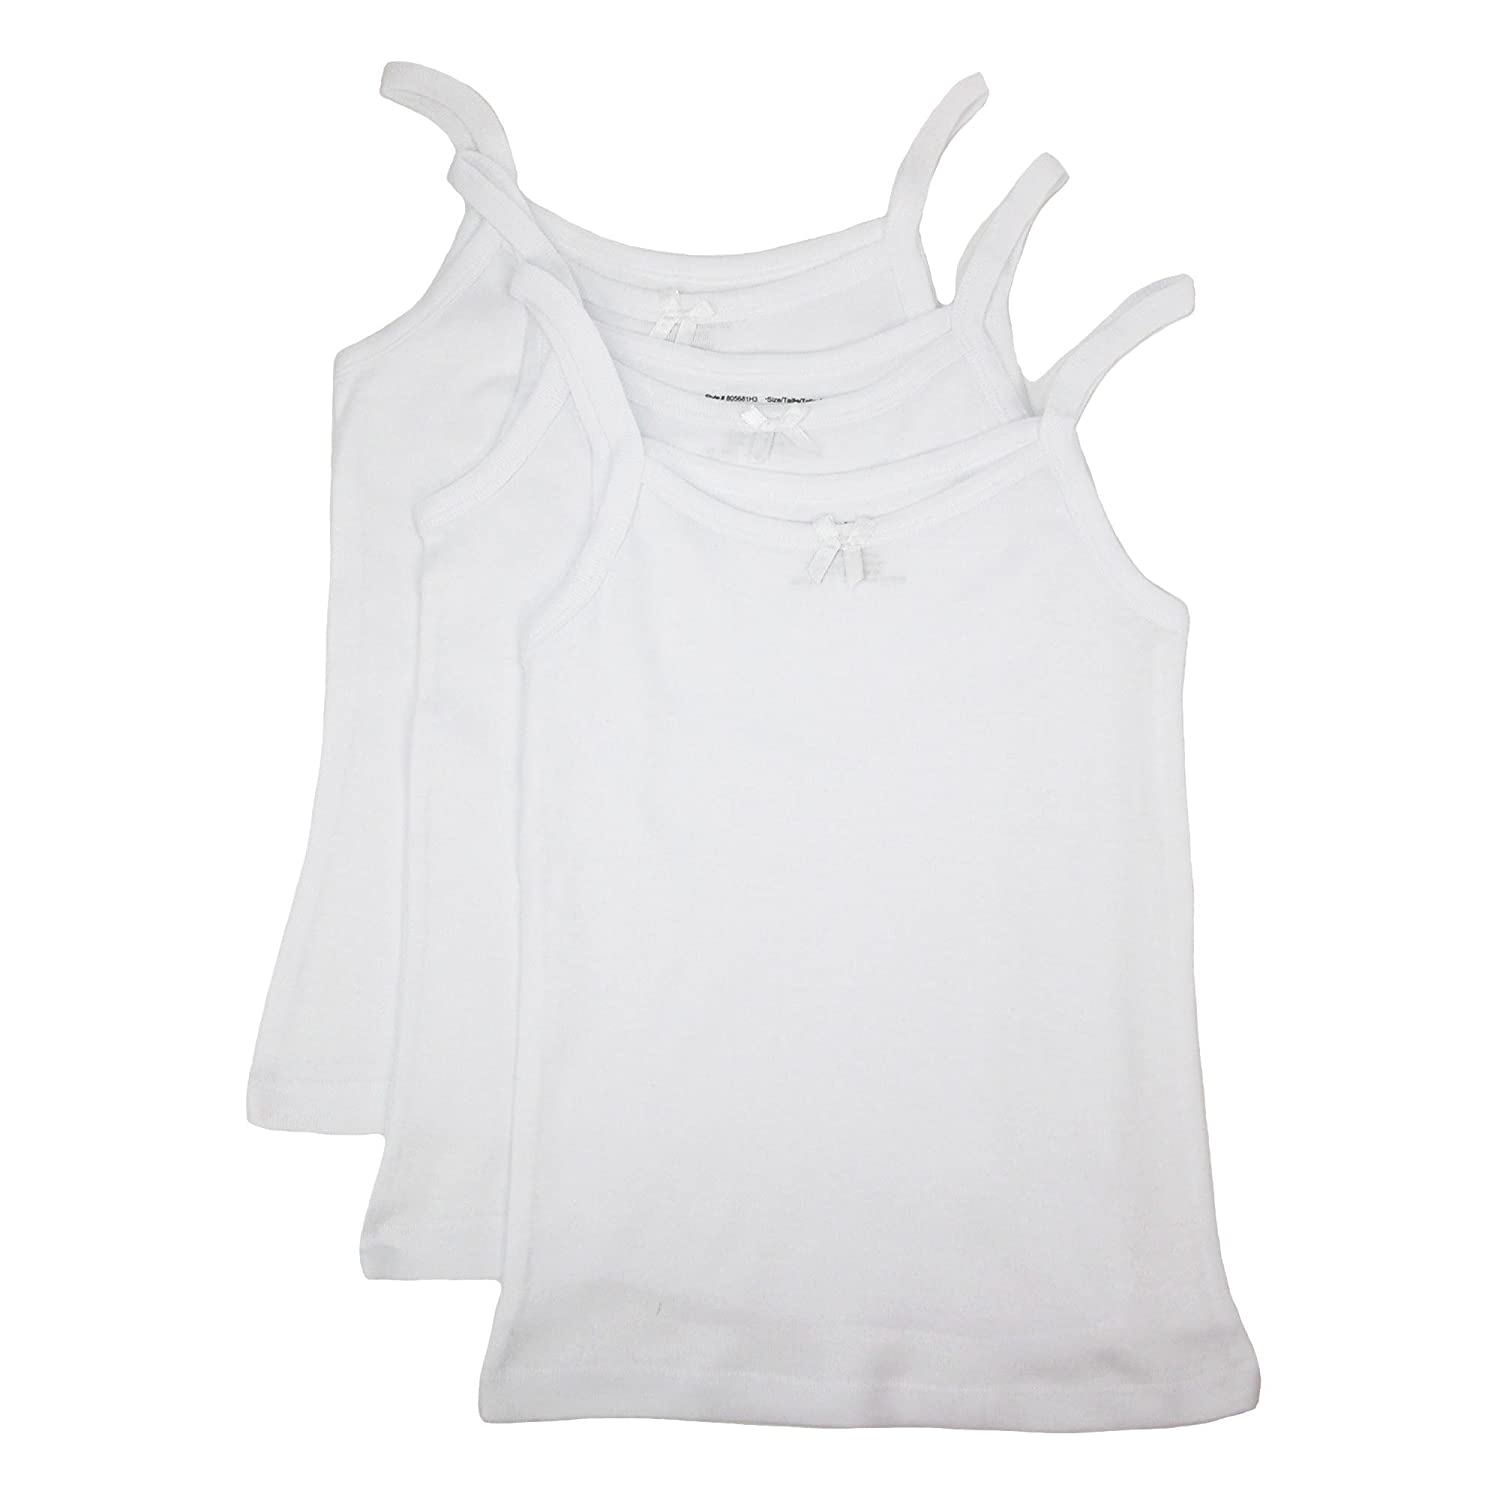 Rene Rofe Girl's Bow Front Cotton Cami (Pack of 3) Small White